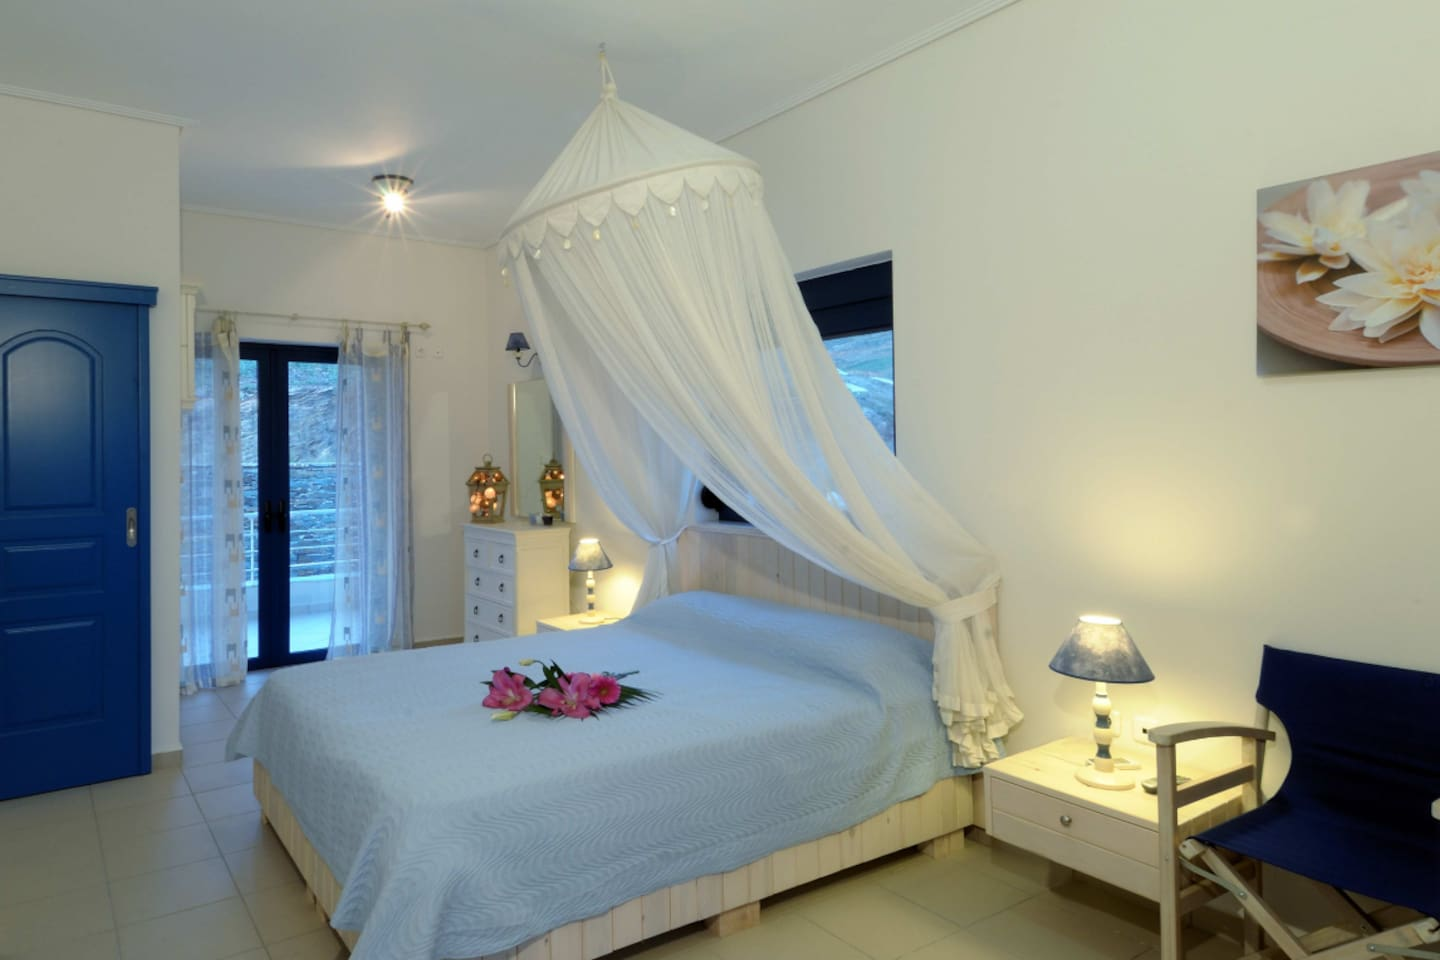 Our master bedroom. It has a double bed a balcony and a huge veranda. Sunny and airy will help you to relax and enjoy your vacation.